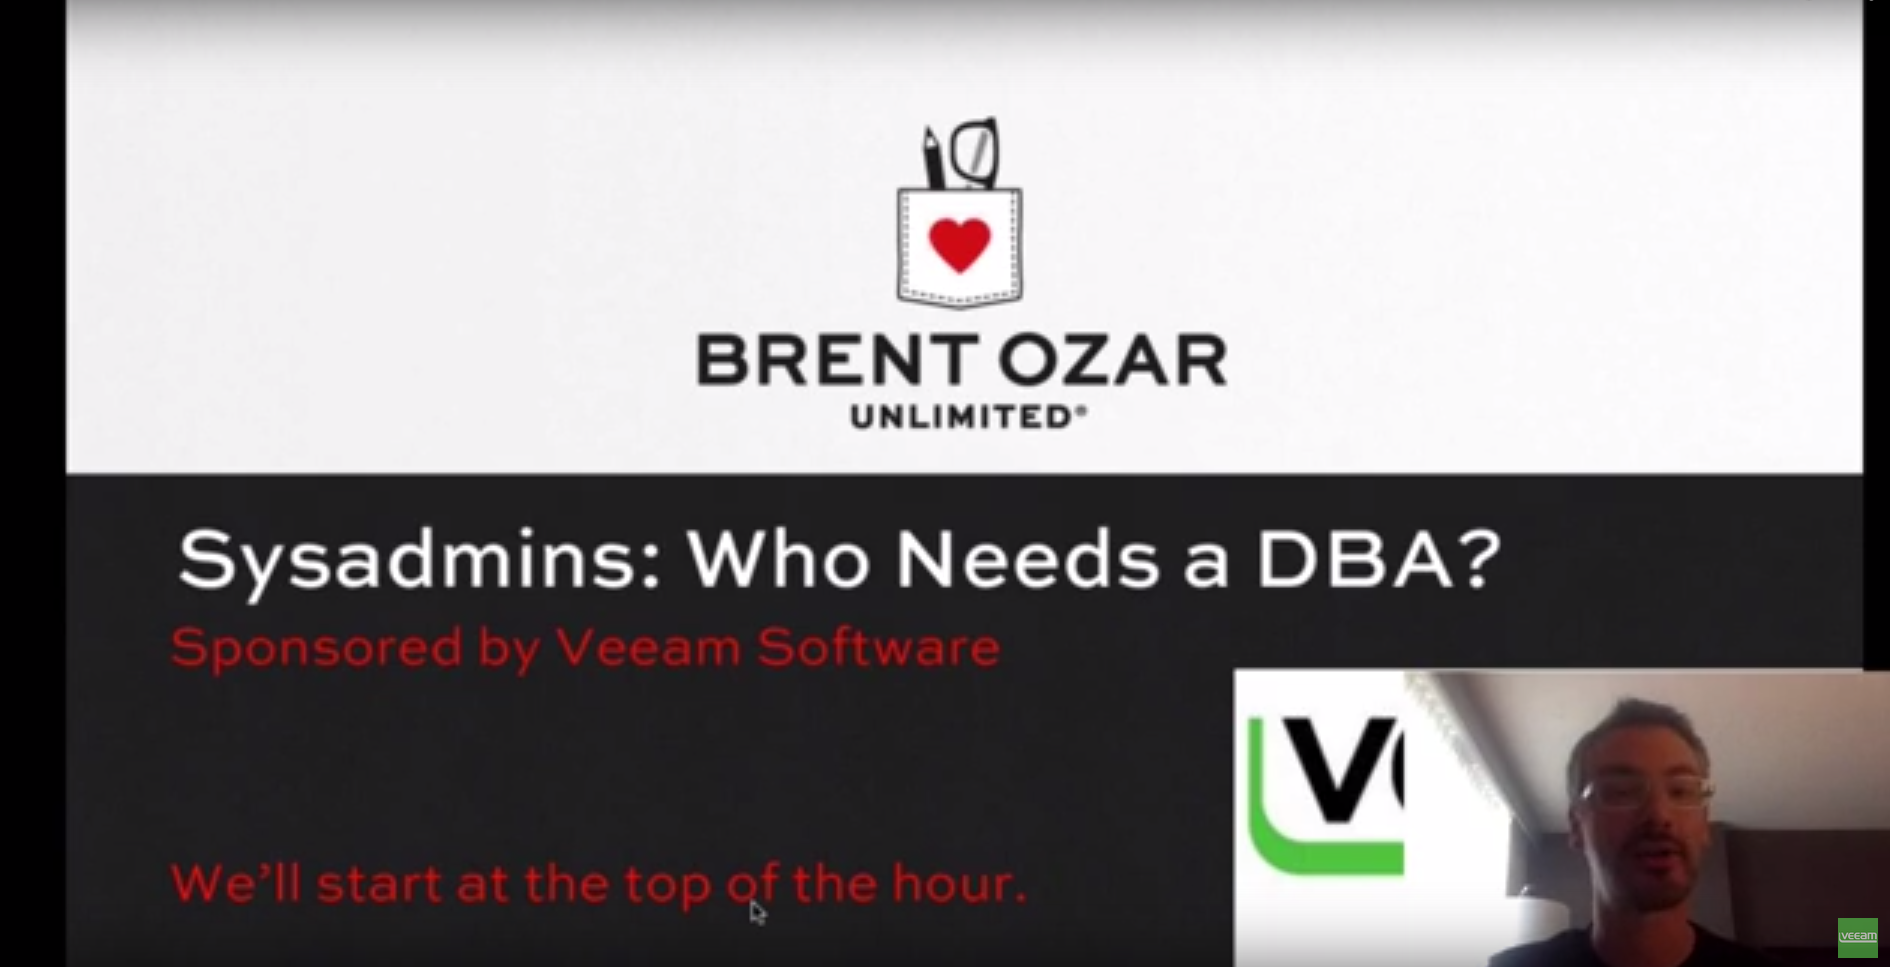 Sysadmins: Who Needs a DBA? With Brent Ozar